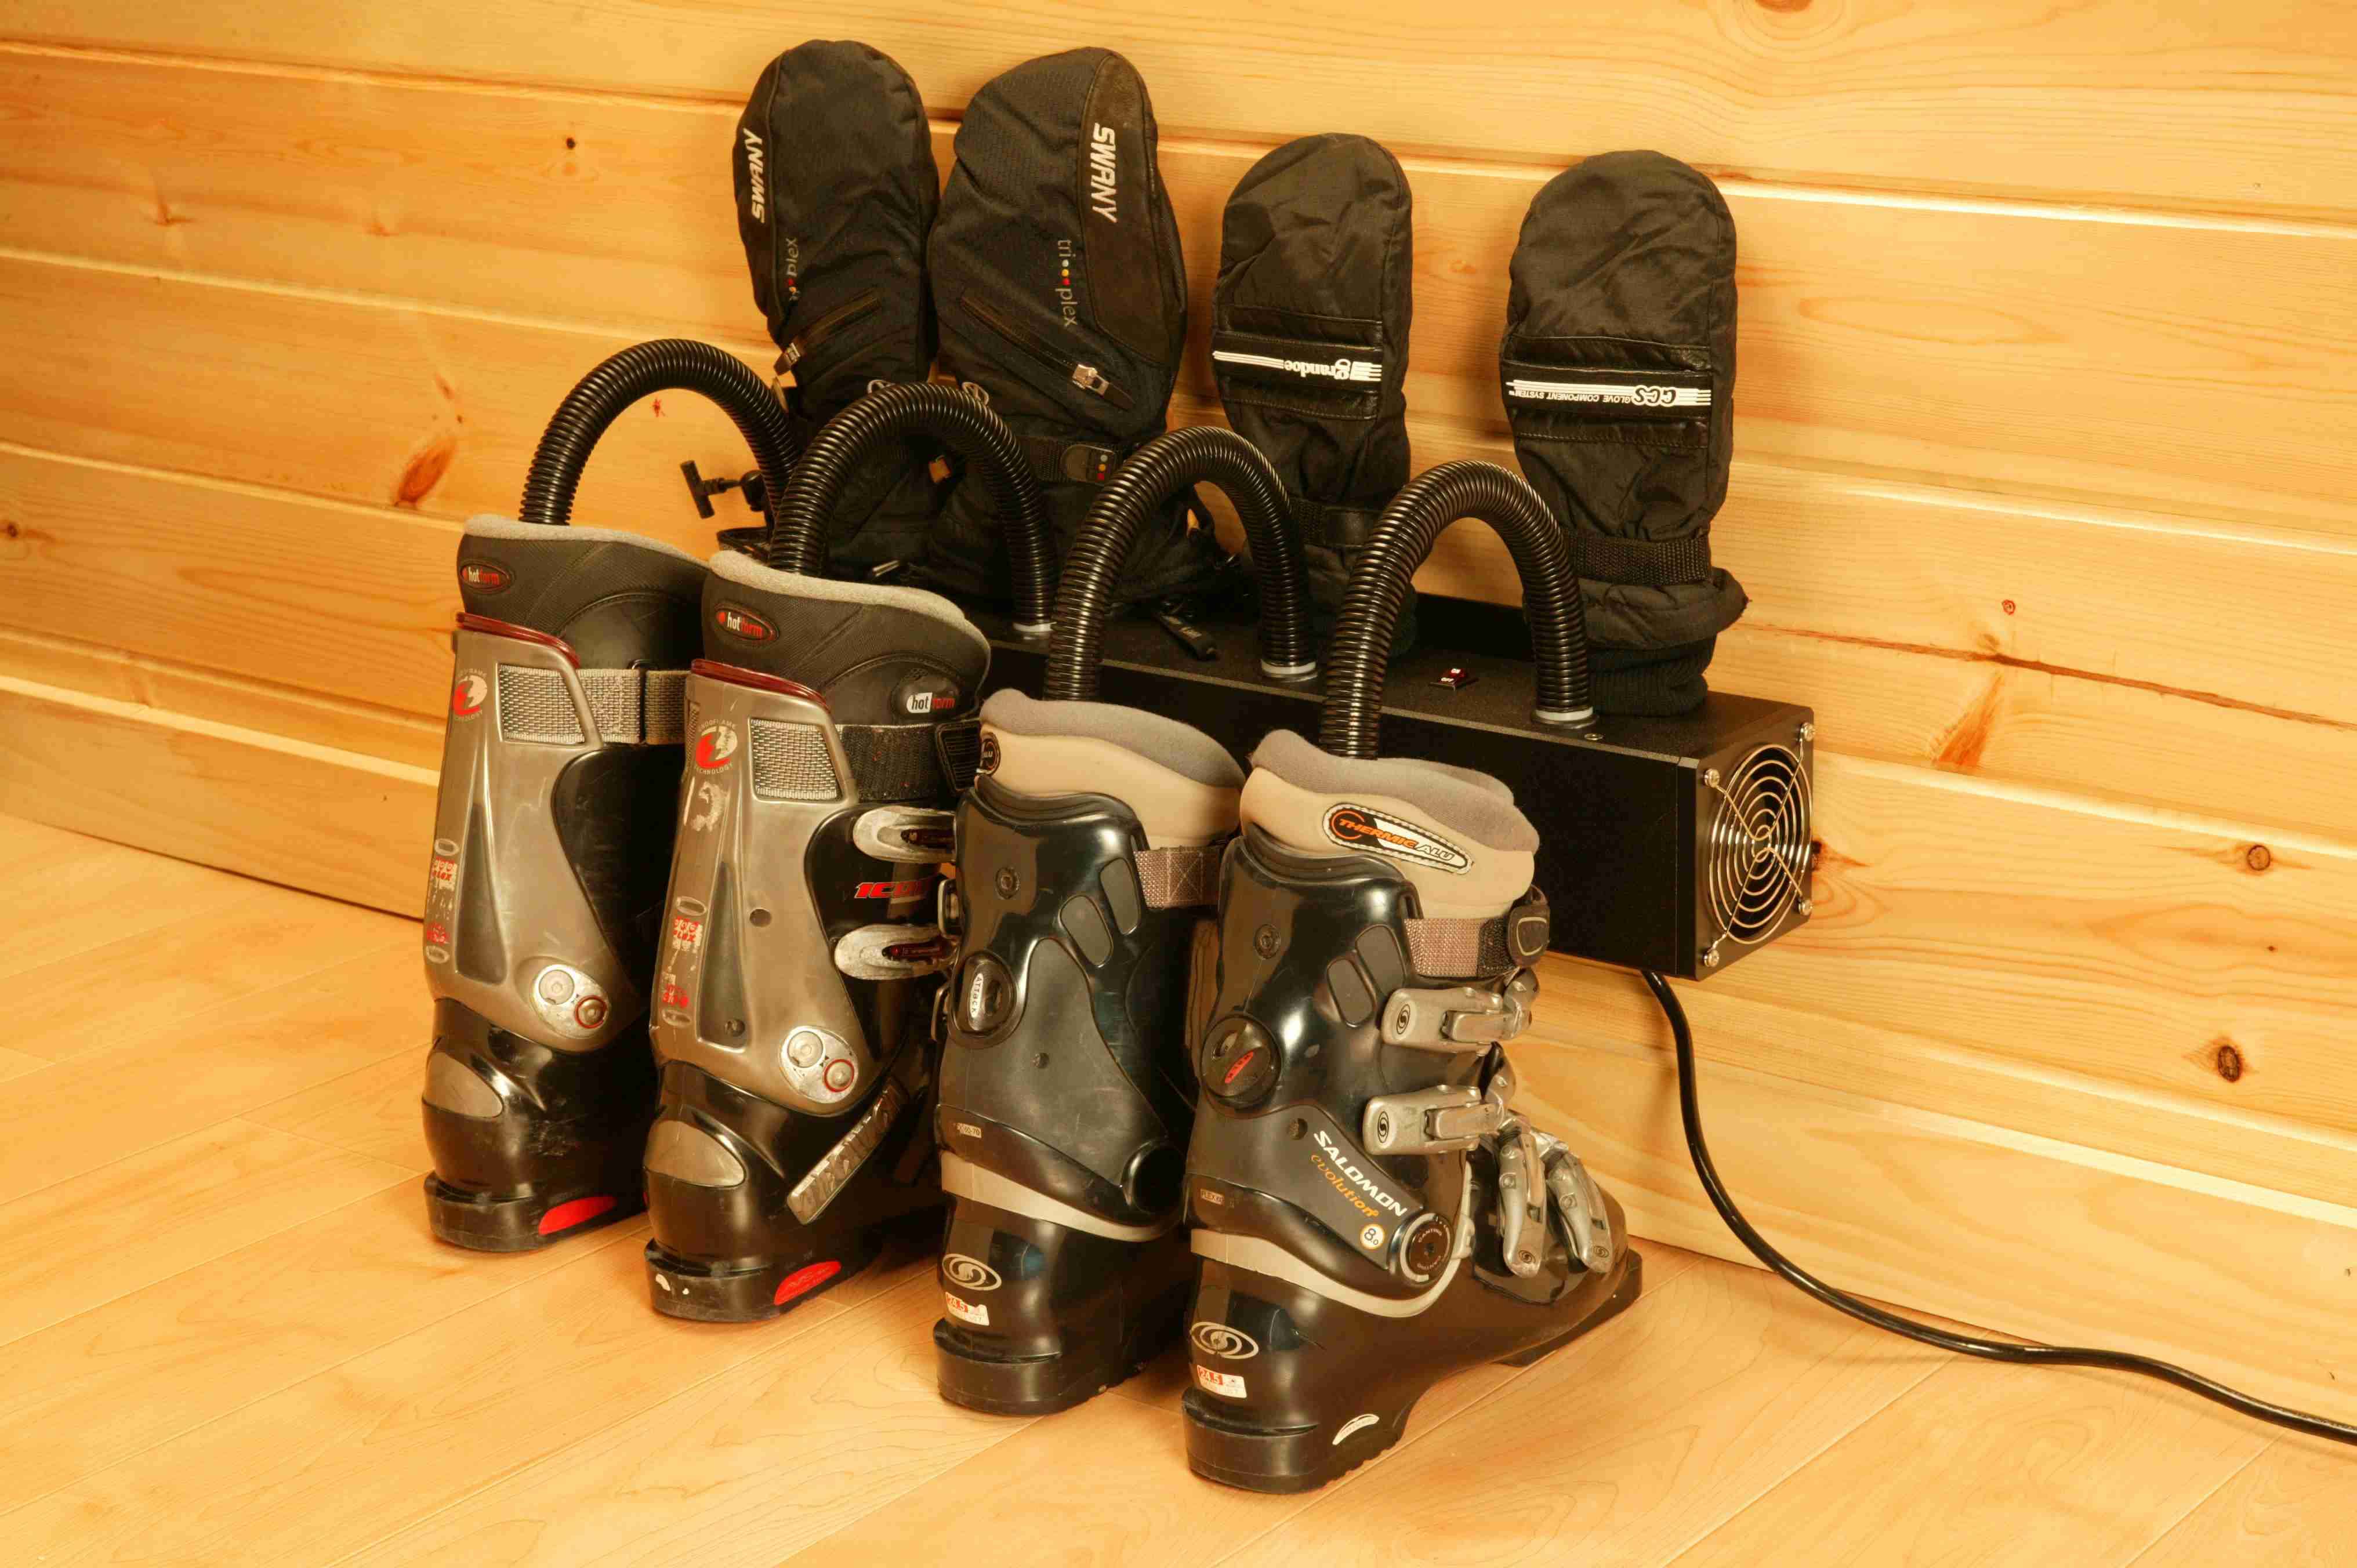 Chinook Ski Boot Dryer No Heat For Save Overnight Drying